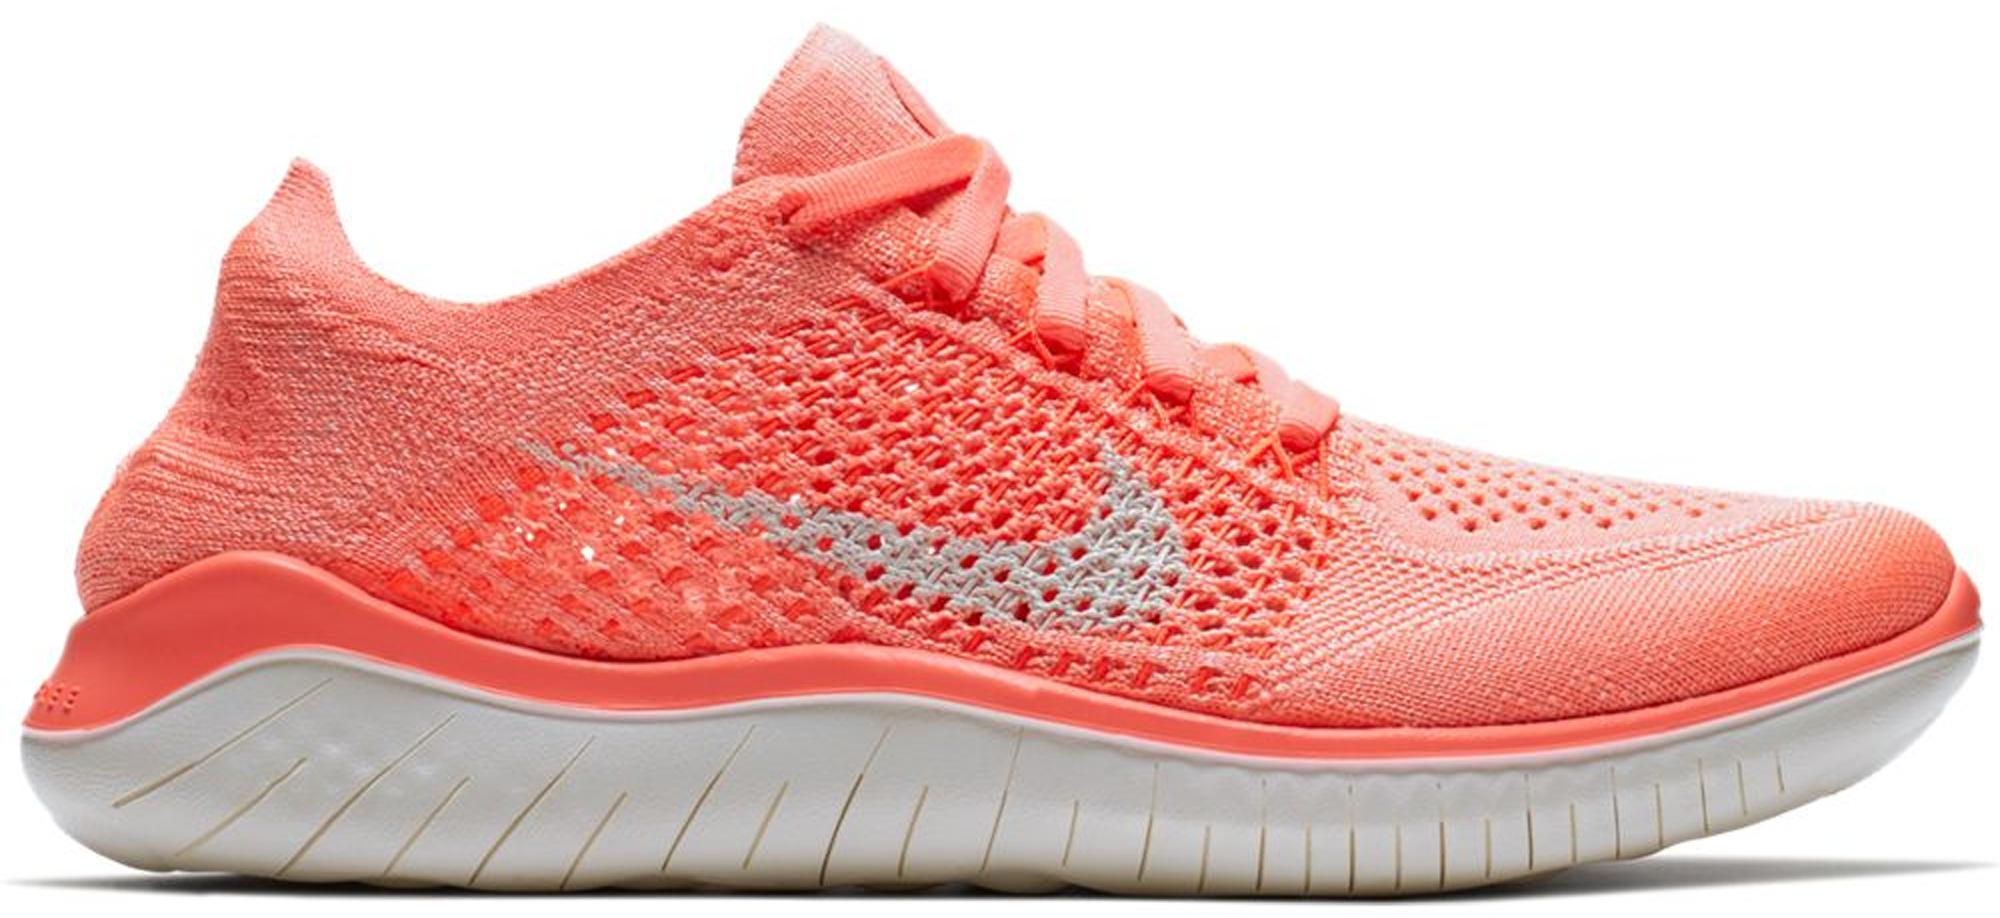 Pegajoso amor Presentar  Nike Synthetic Wmns Free Rn Flyknit 2018 Running Shoes in Red - Lyst